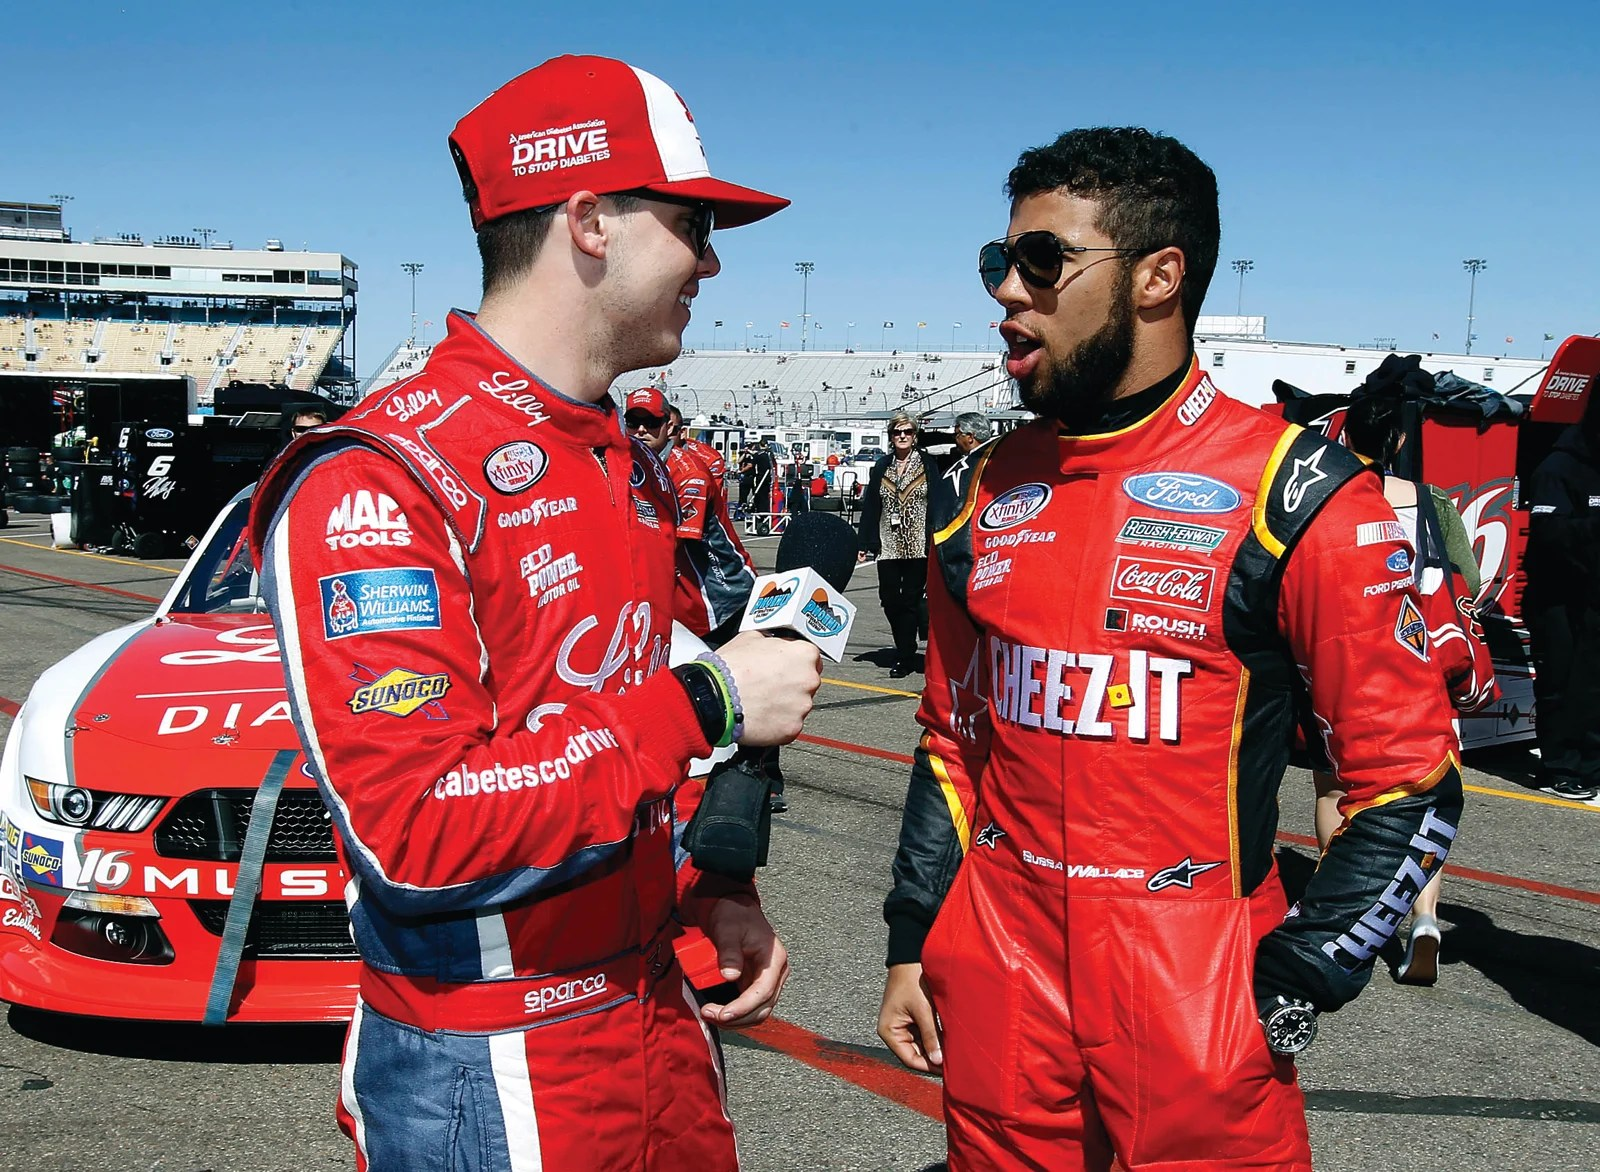 In this March 12, 2016, file photo, Ryan Reed, left, interviews fellow driver Darrell Wallace Jr. after NASCAR Xfinity Series qualifying at Phoenix International Raceway in Avondale, Ariz. Darrell Wallace Jr. will become the first black driver to race at NASCAR's top level since 2006 when he replaces injured Aric Almirola this weekend at Pocono Raceway. AP NEWSWIRE